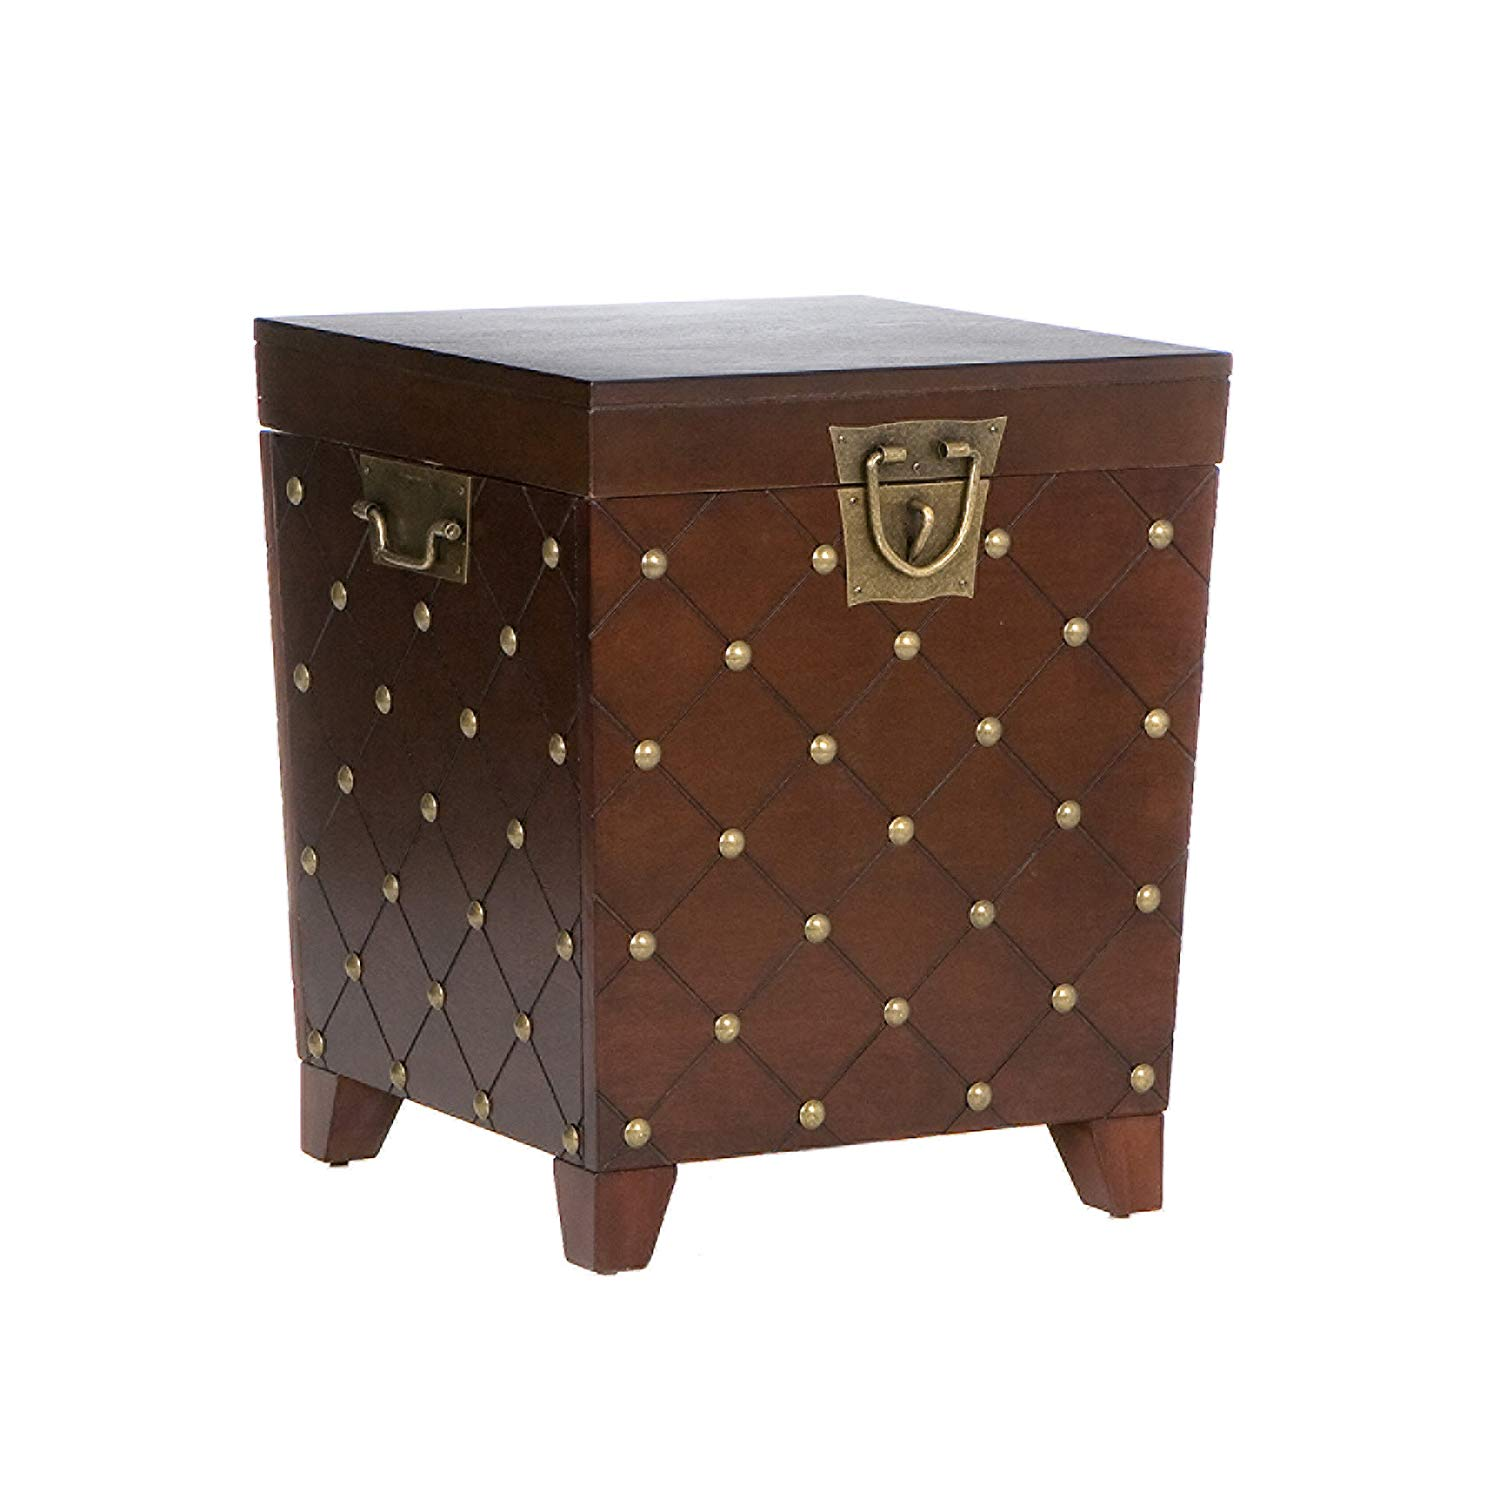 bowery hill nailhead trunk end table espresso small accent with storage kitchen dining wooden plant stand changing dresser big and tall recliners outdoor furniture slim lamp